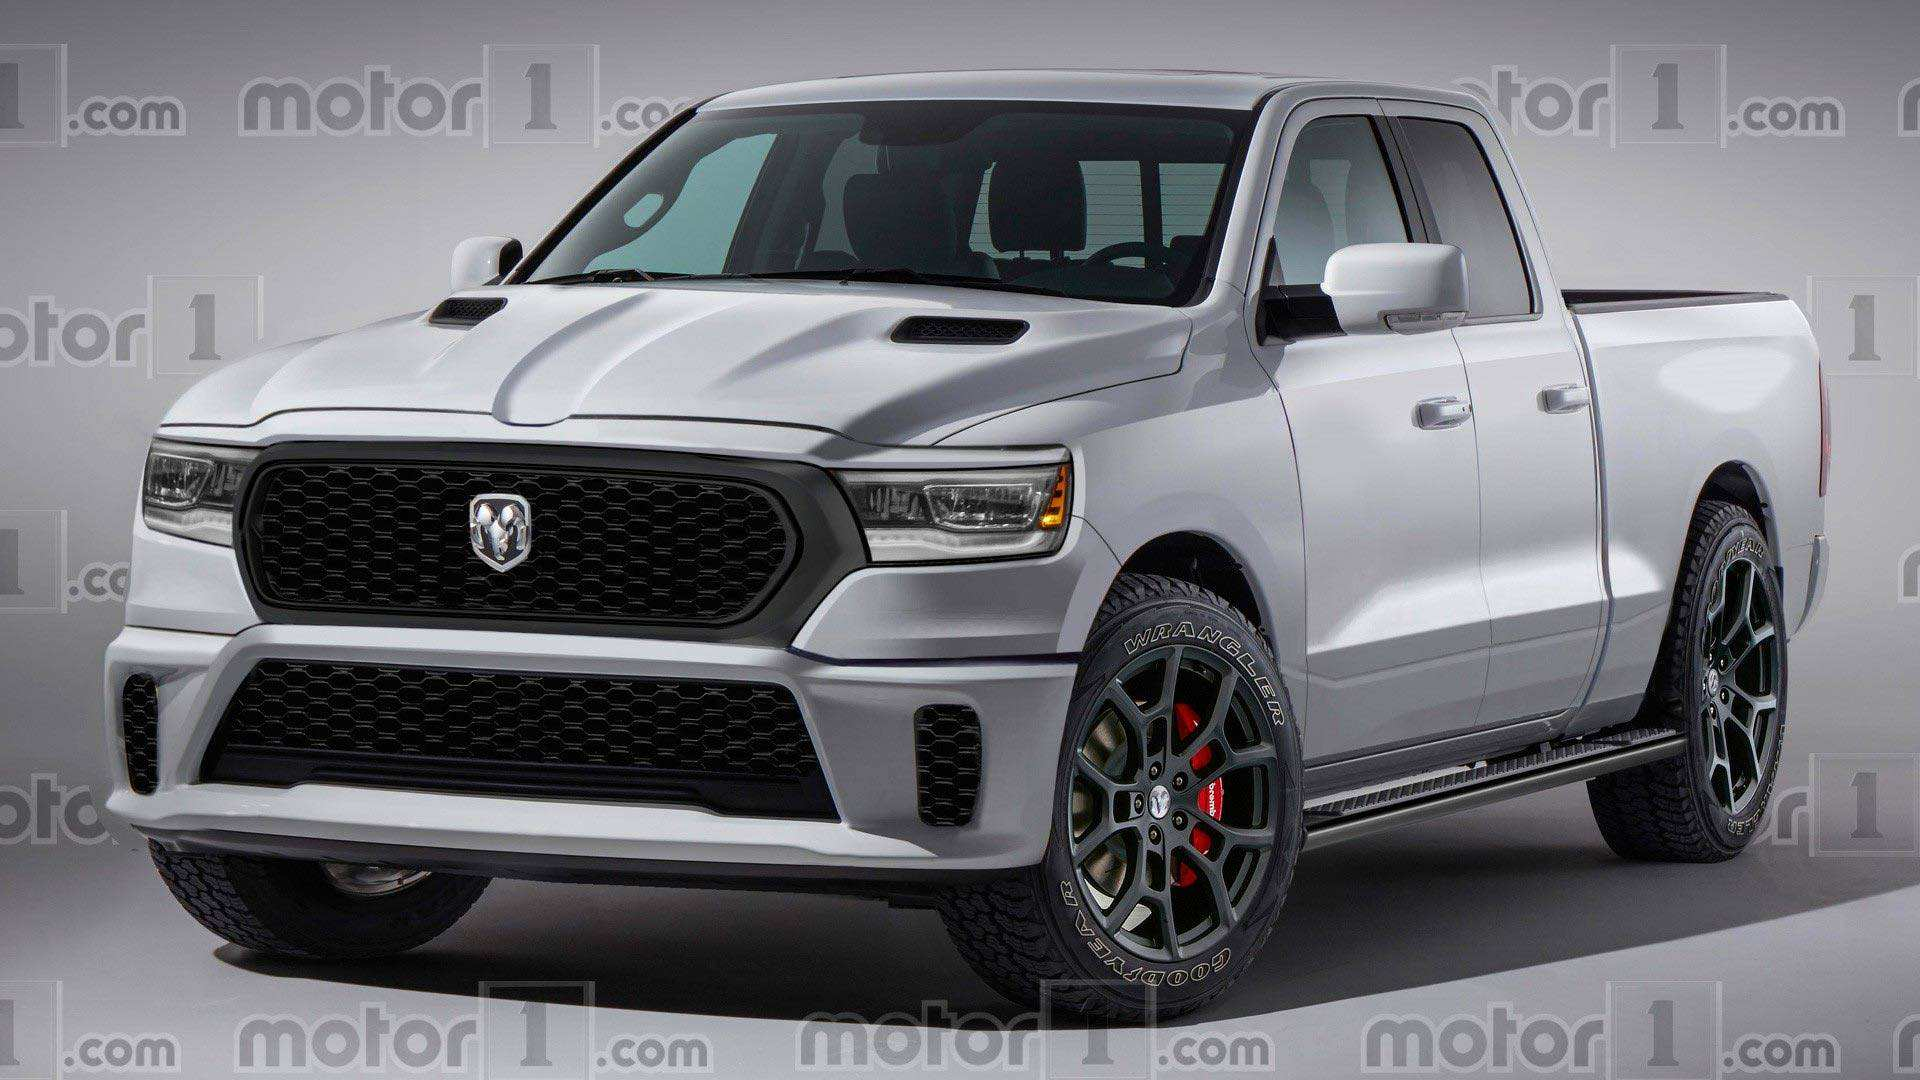 36 All New 2019 Ram 1500 Hellcat Diesel Price And Review